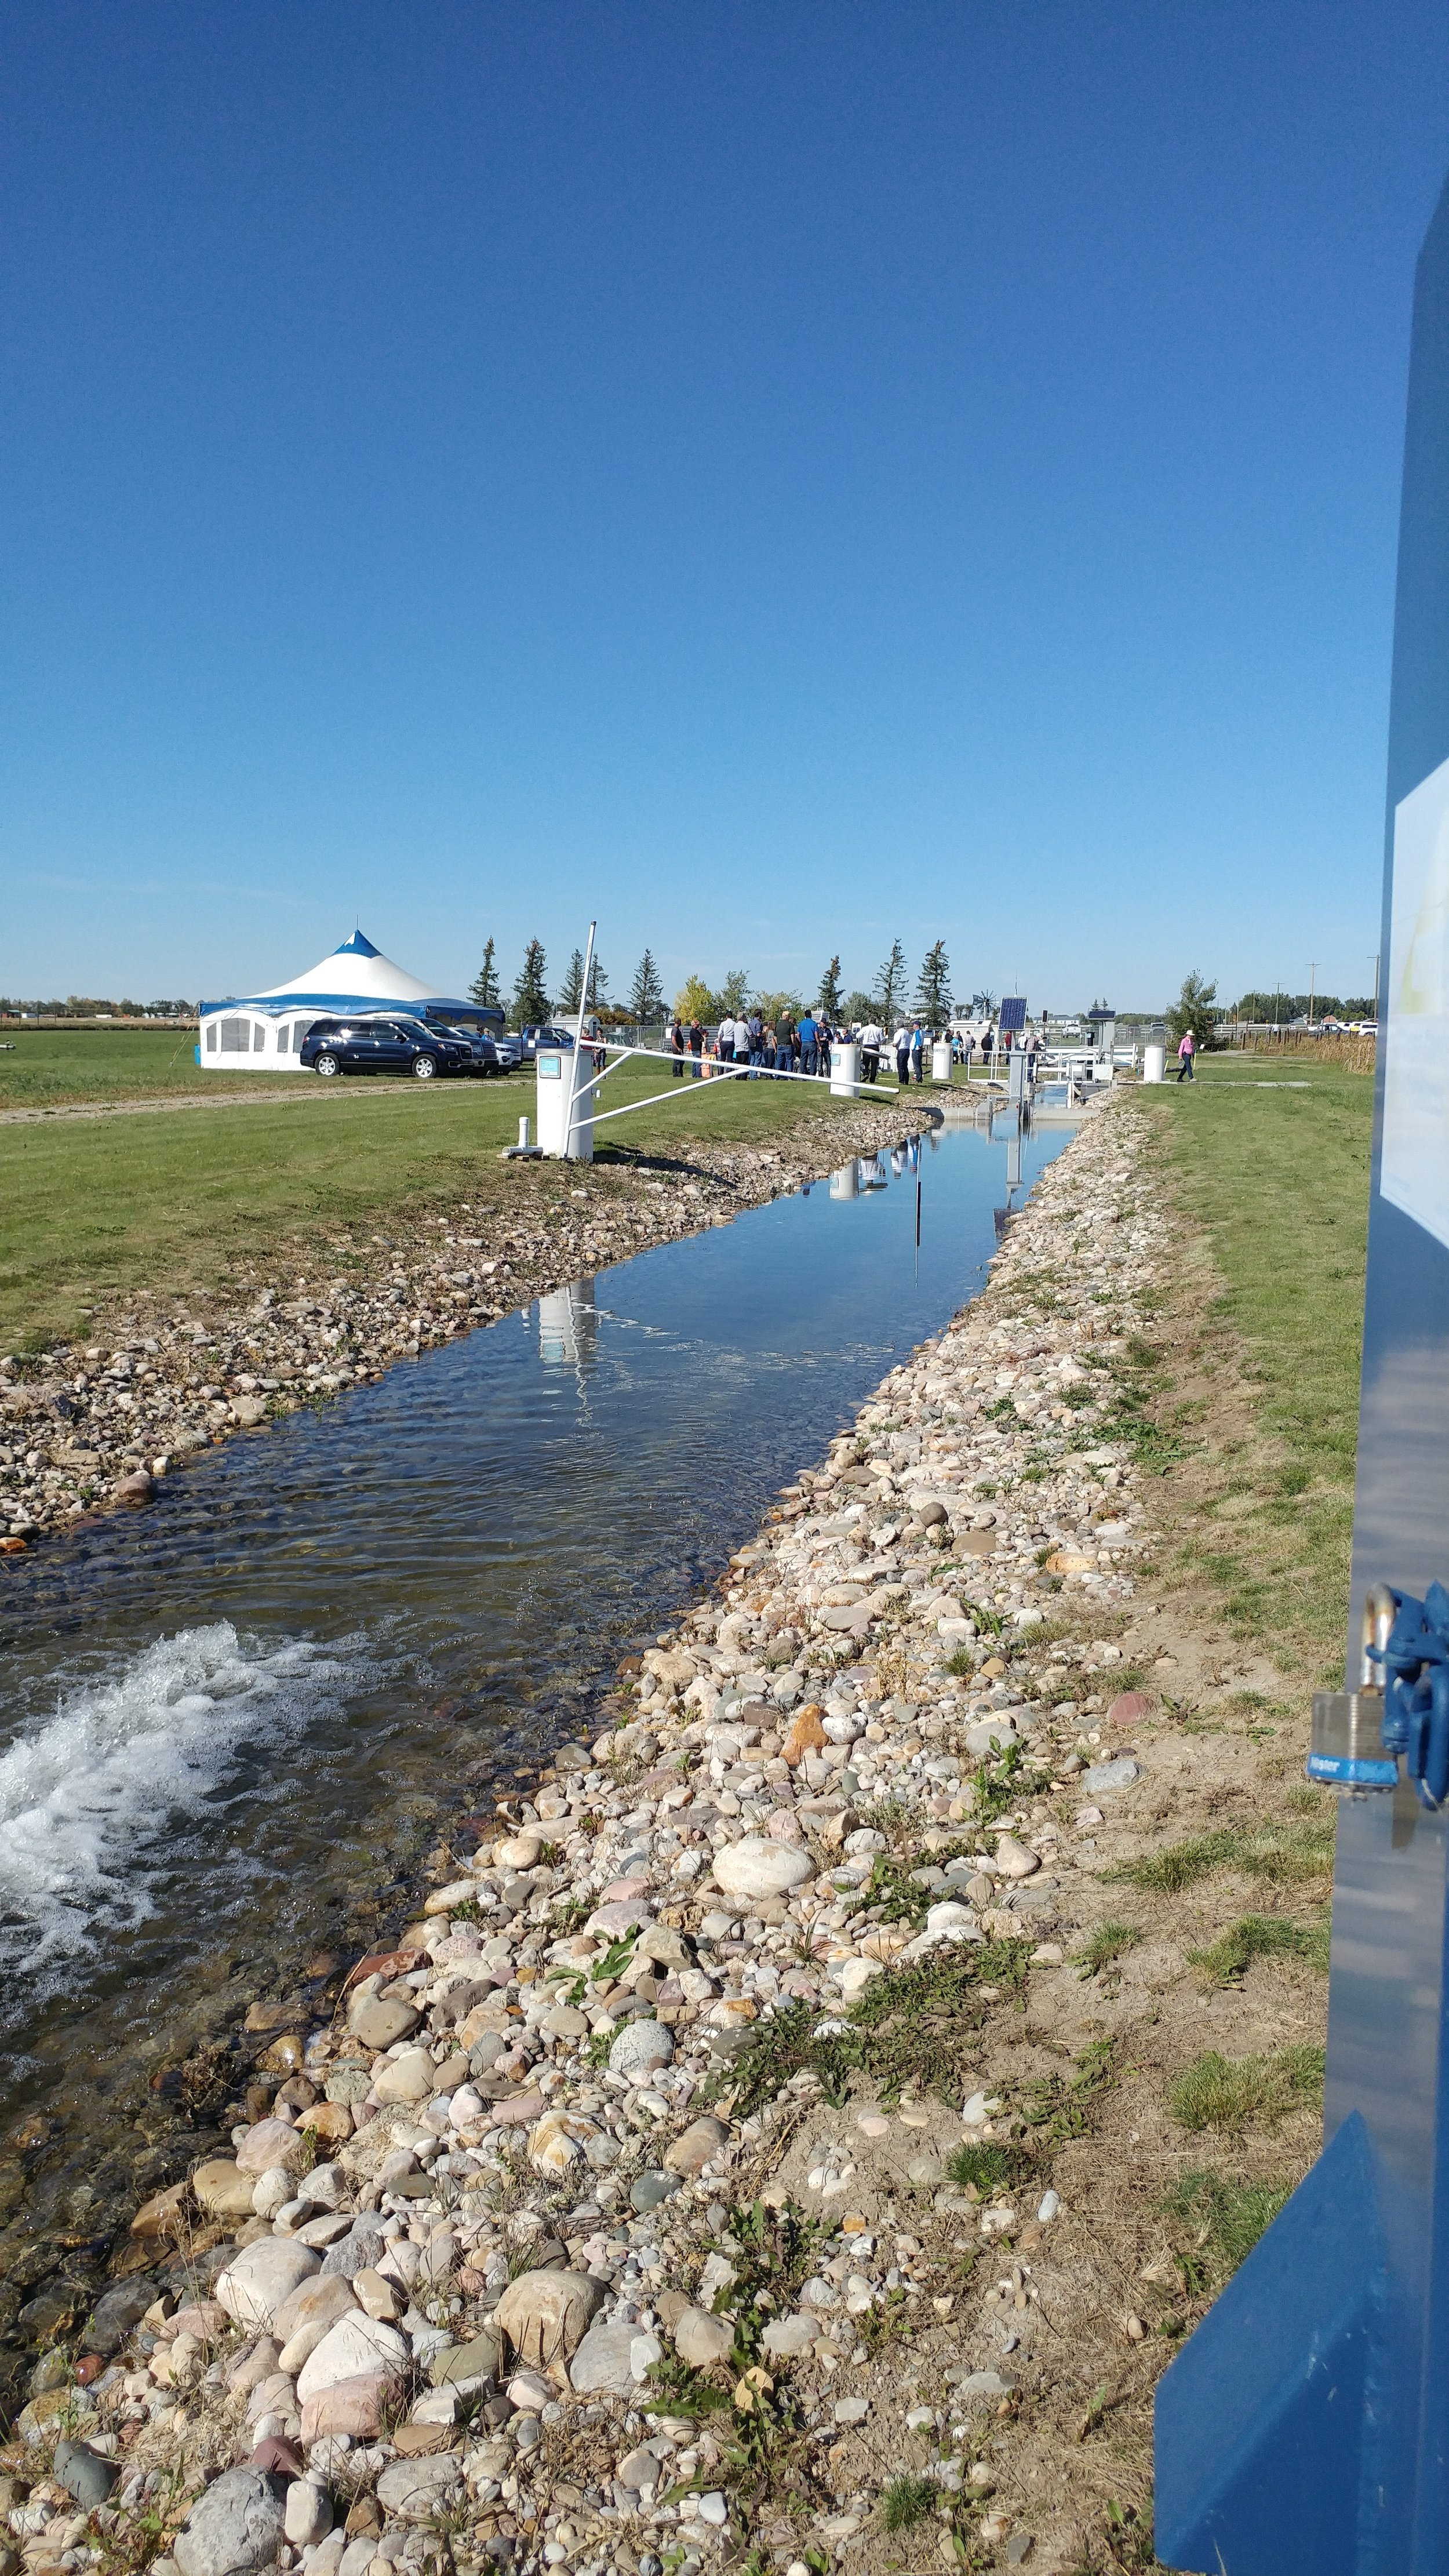 The Alberta Irrigation Technology Centre -where organizers gave a live tour of the Water Monitoring Technology and Equipment.